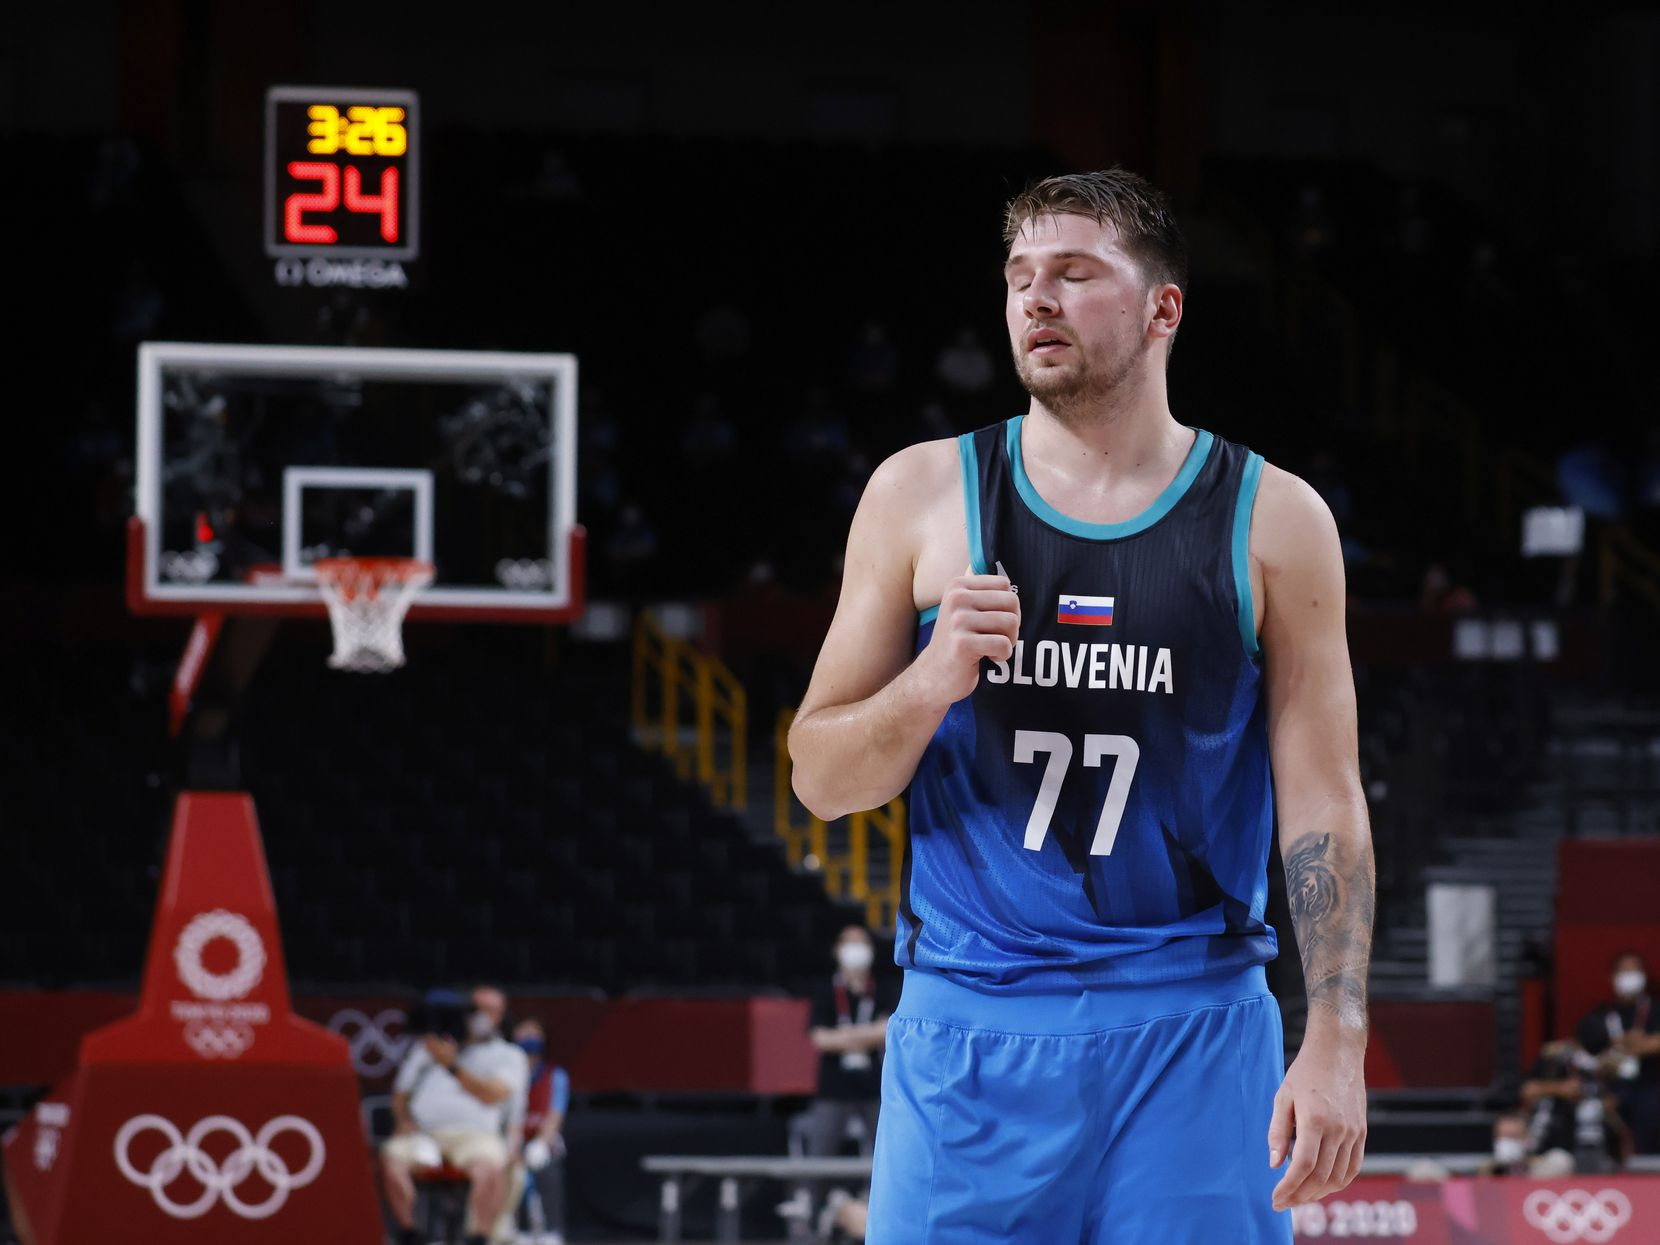 Slovenia's Luka Doncic (7) reacts after a play in a game against France's during the second half of a men's basketball semifinal at the postponed 2020 Tokyo Olympics at Saitama Super Arena, on Thursday, August 5, 2021, in Saitama, Japan. France defeated Slovenia 90-89. Slovenia will play in the bronze medal game. (Vernon Bryant/The Dallas Morning News)